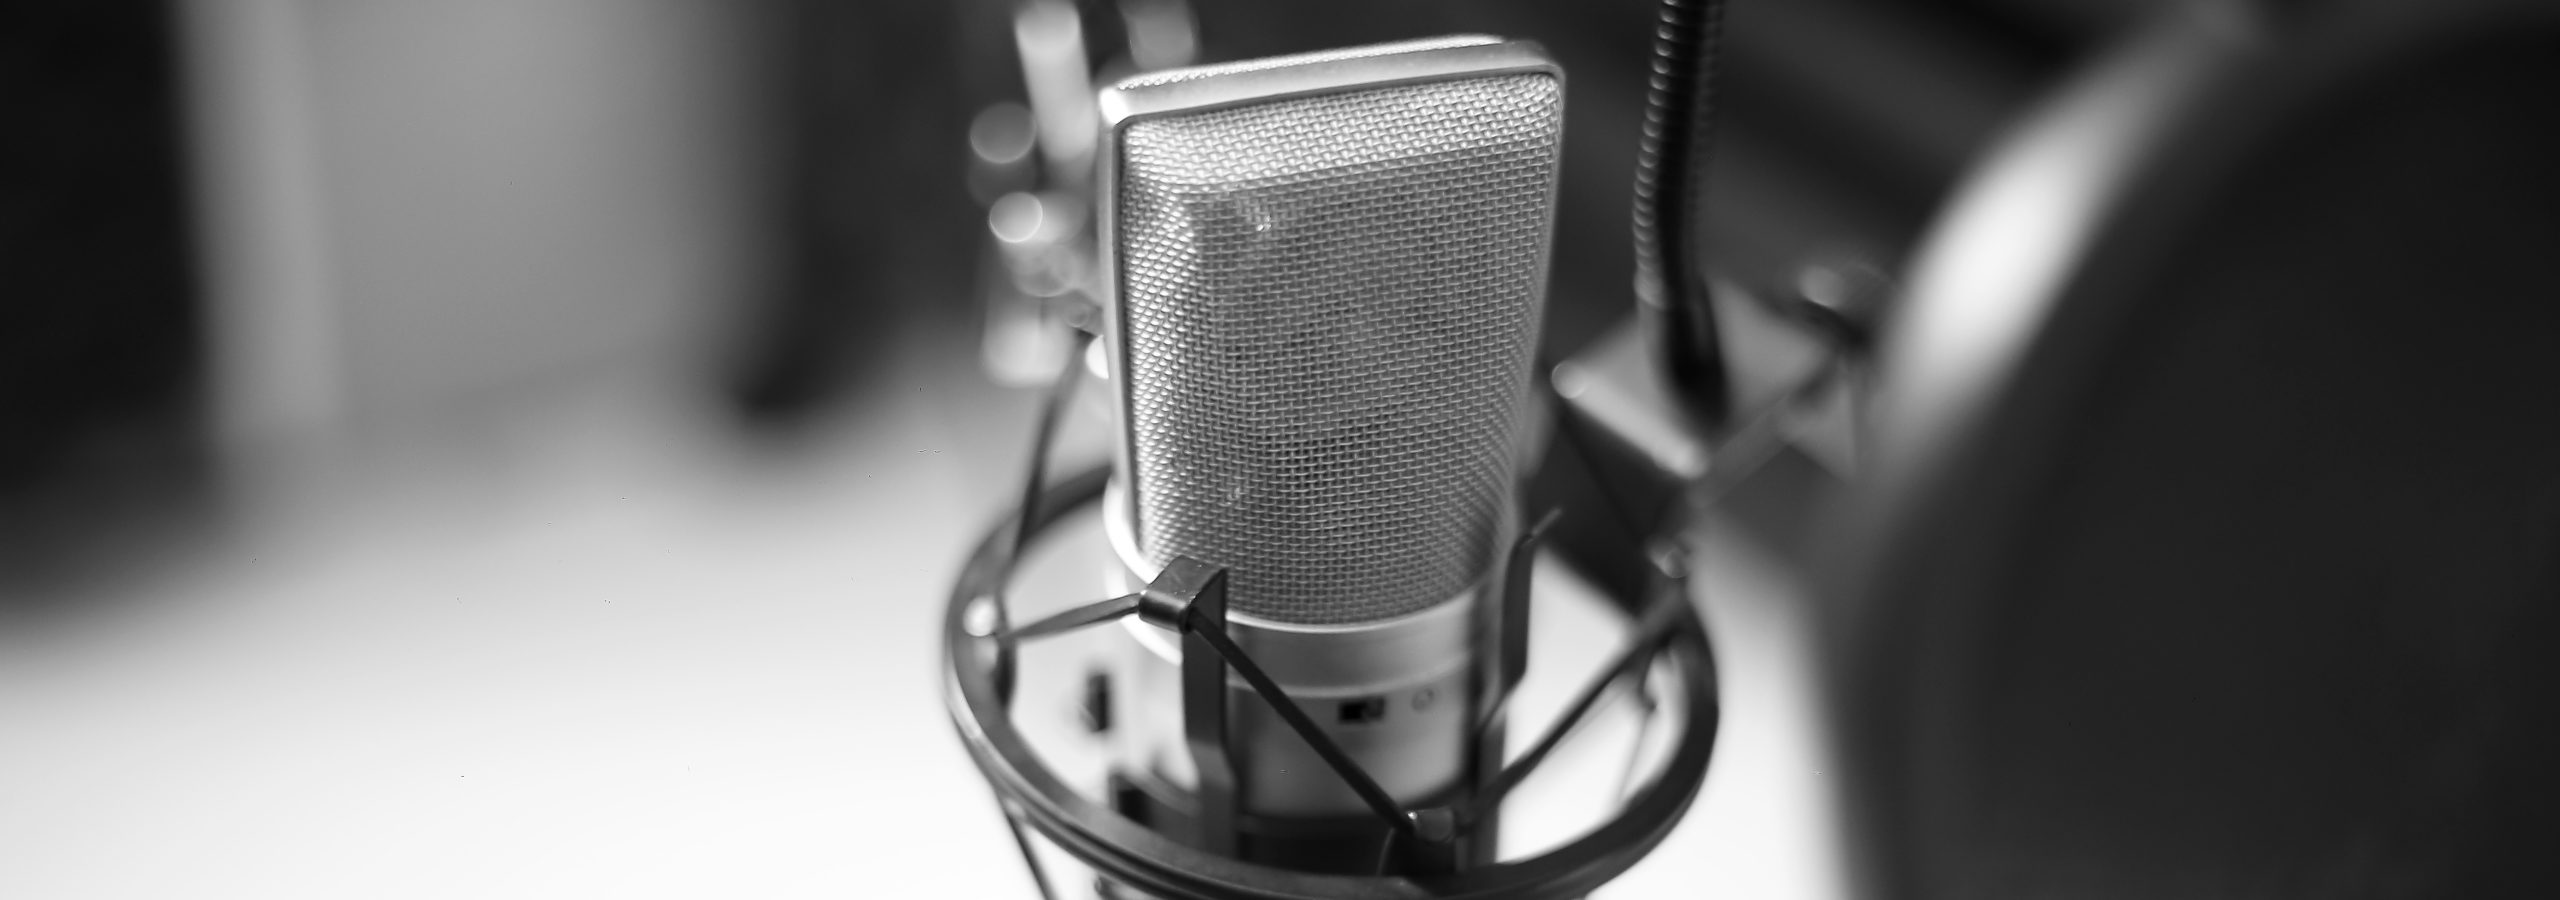 voice-over microphone